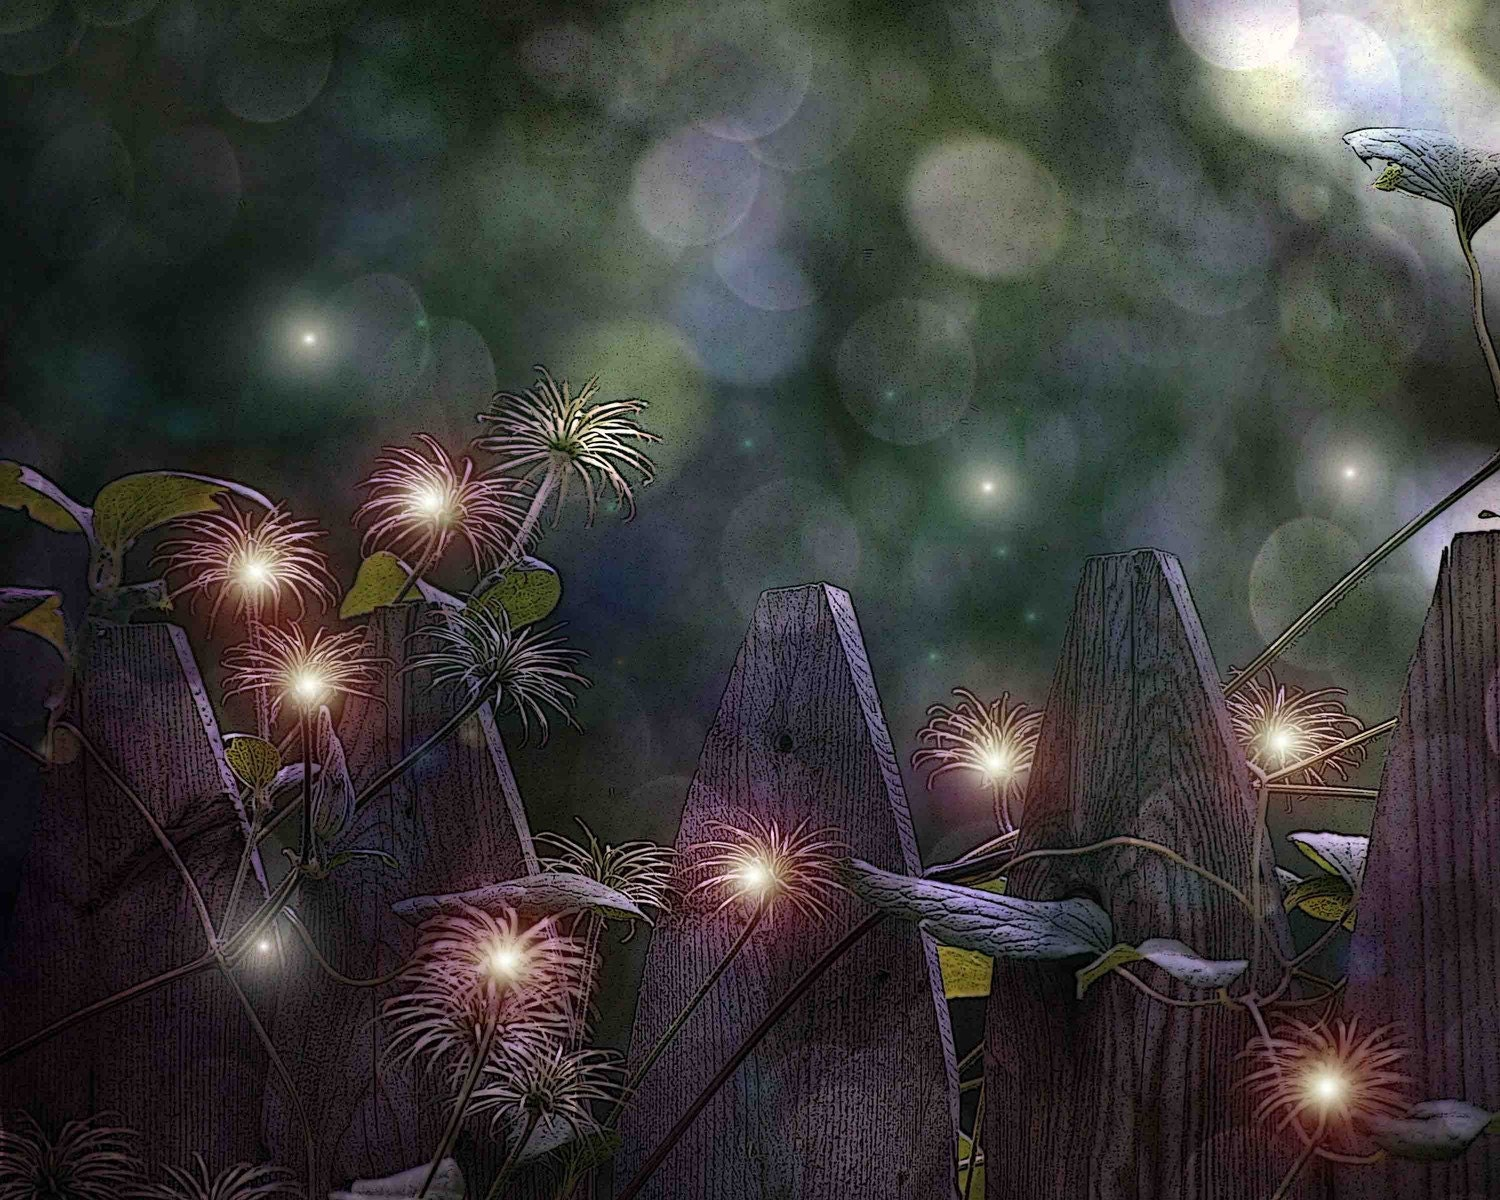 Nature Photogaphy, fantasy, fairies, seed pods, purple, bokeh, One Enchanted Evening fine art photgraphy print 8x10